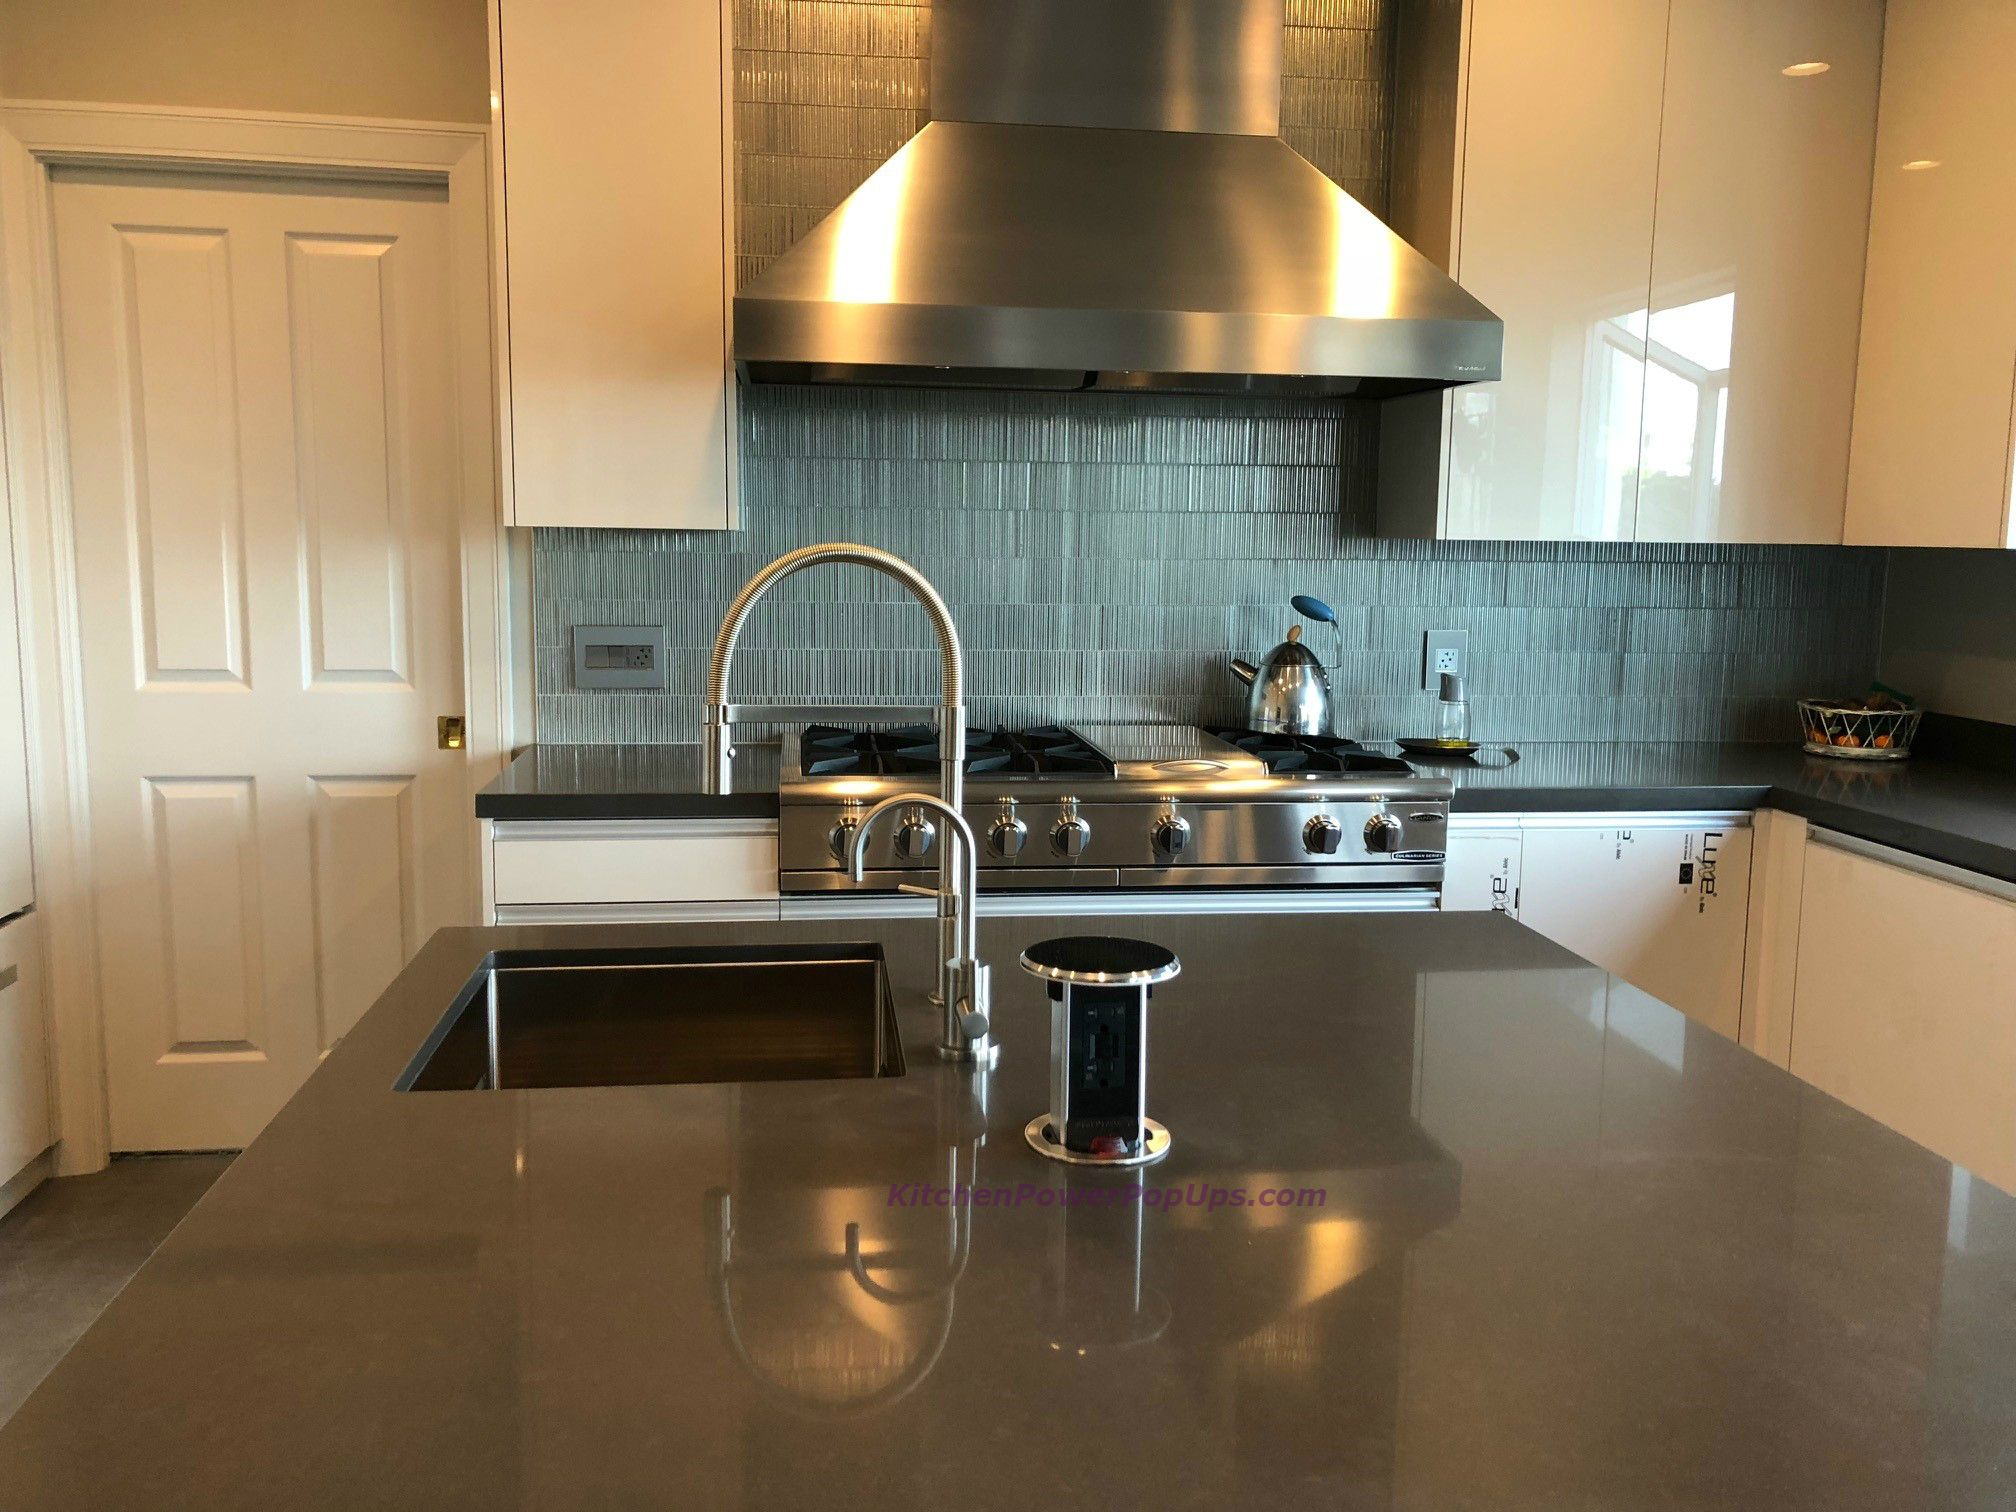 Kitchen Counter Spill Proof Retractable Pop Up 20a Gfci Plugs Black Kitchen Worktop How To Install Countertops Gfci